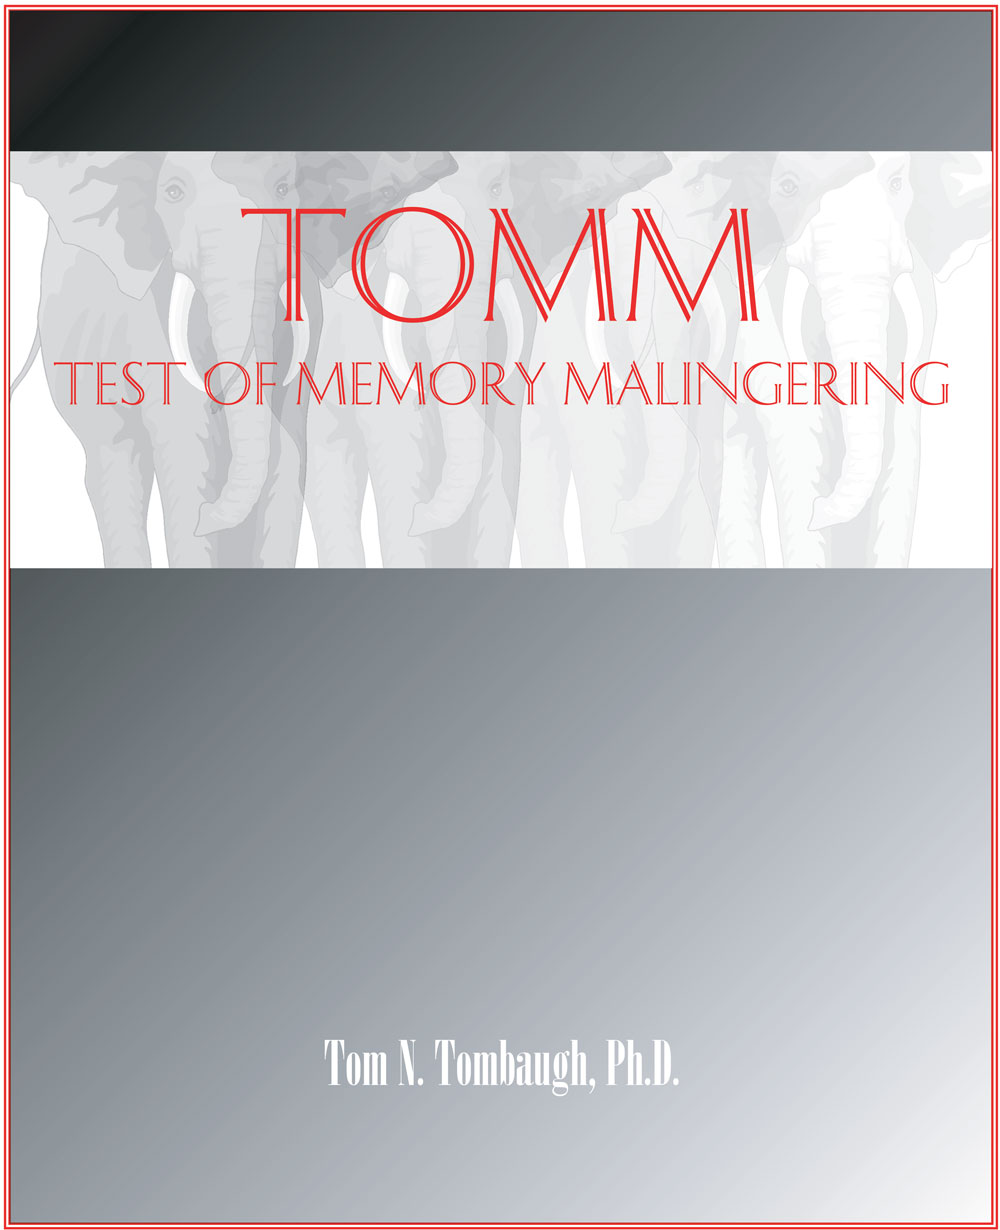 Test of Memory Malingering - TOMM